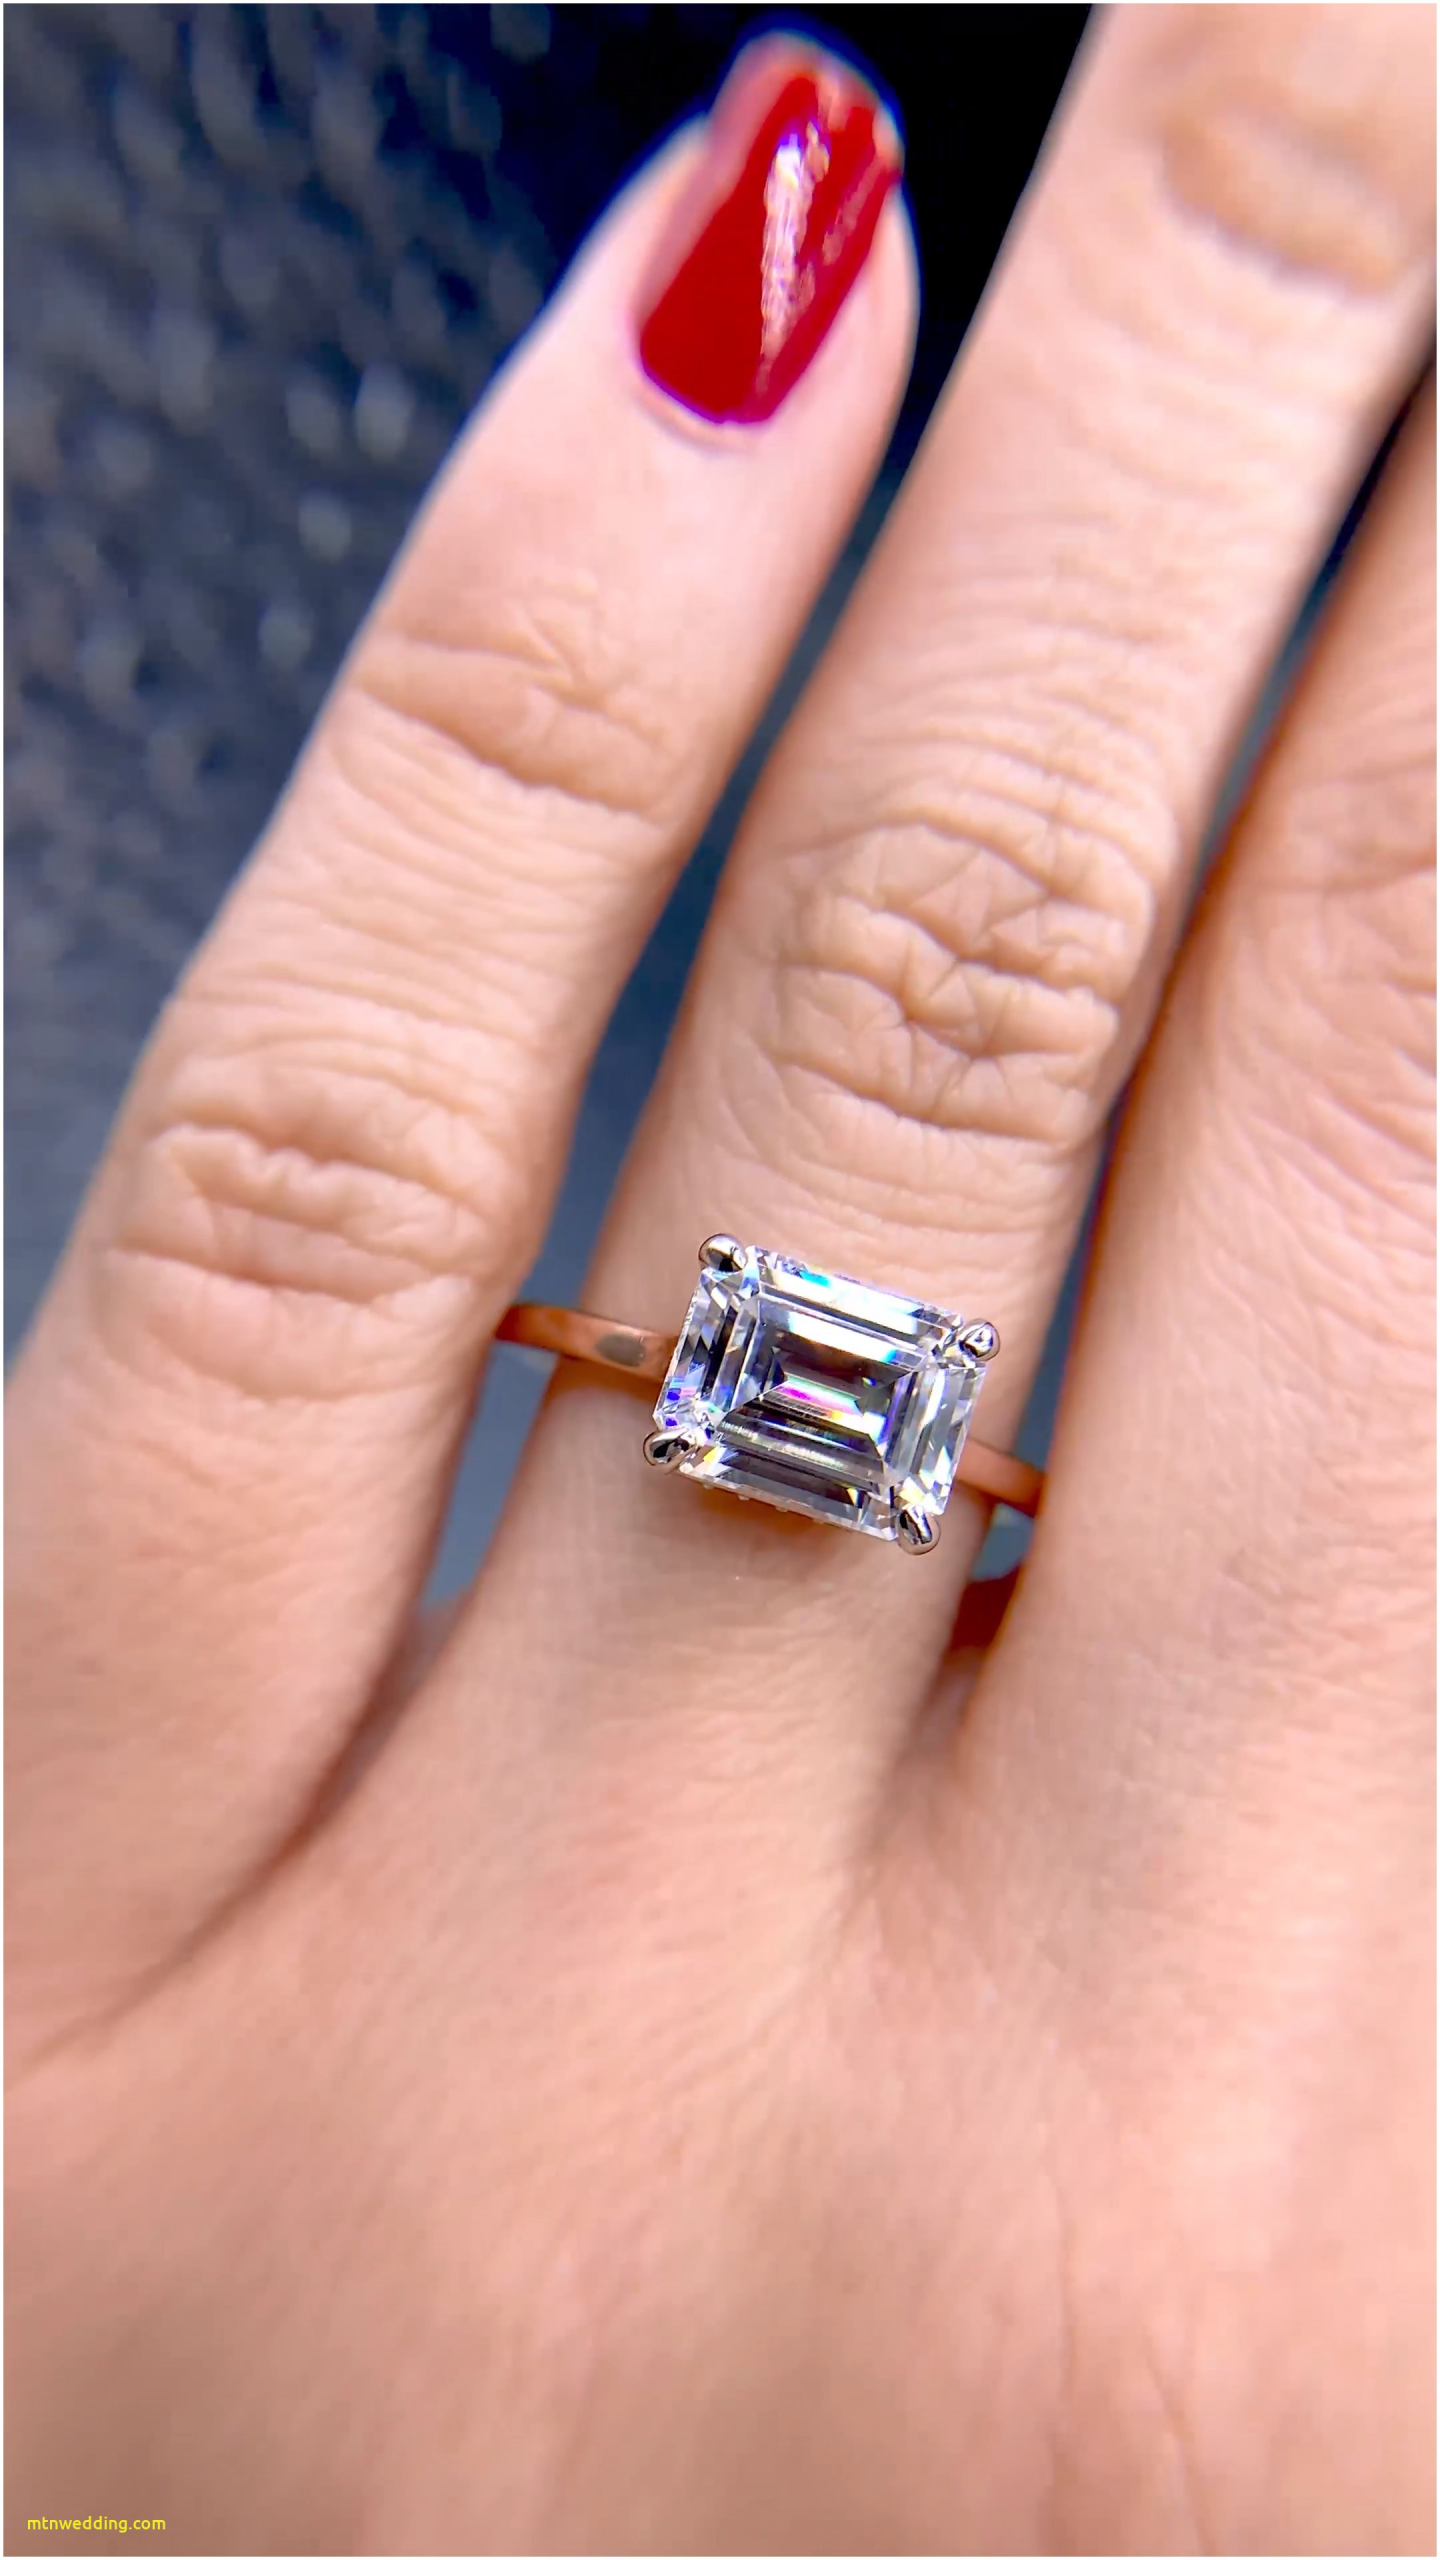 Clean Down Payment On Engagement Ring